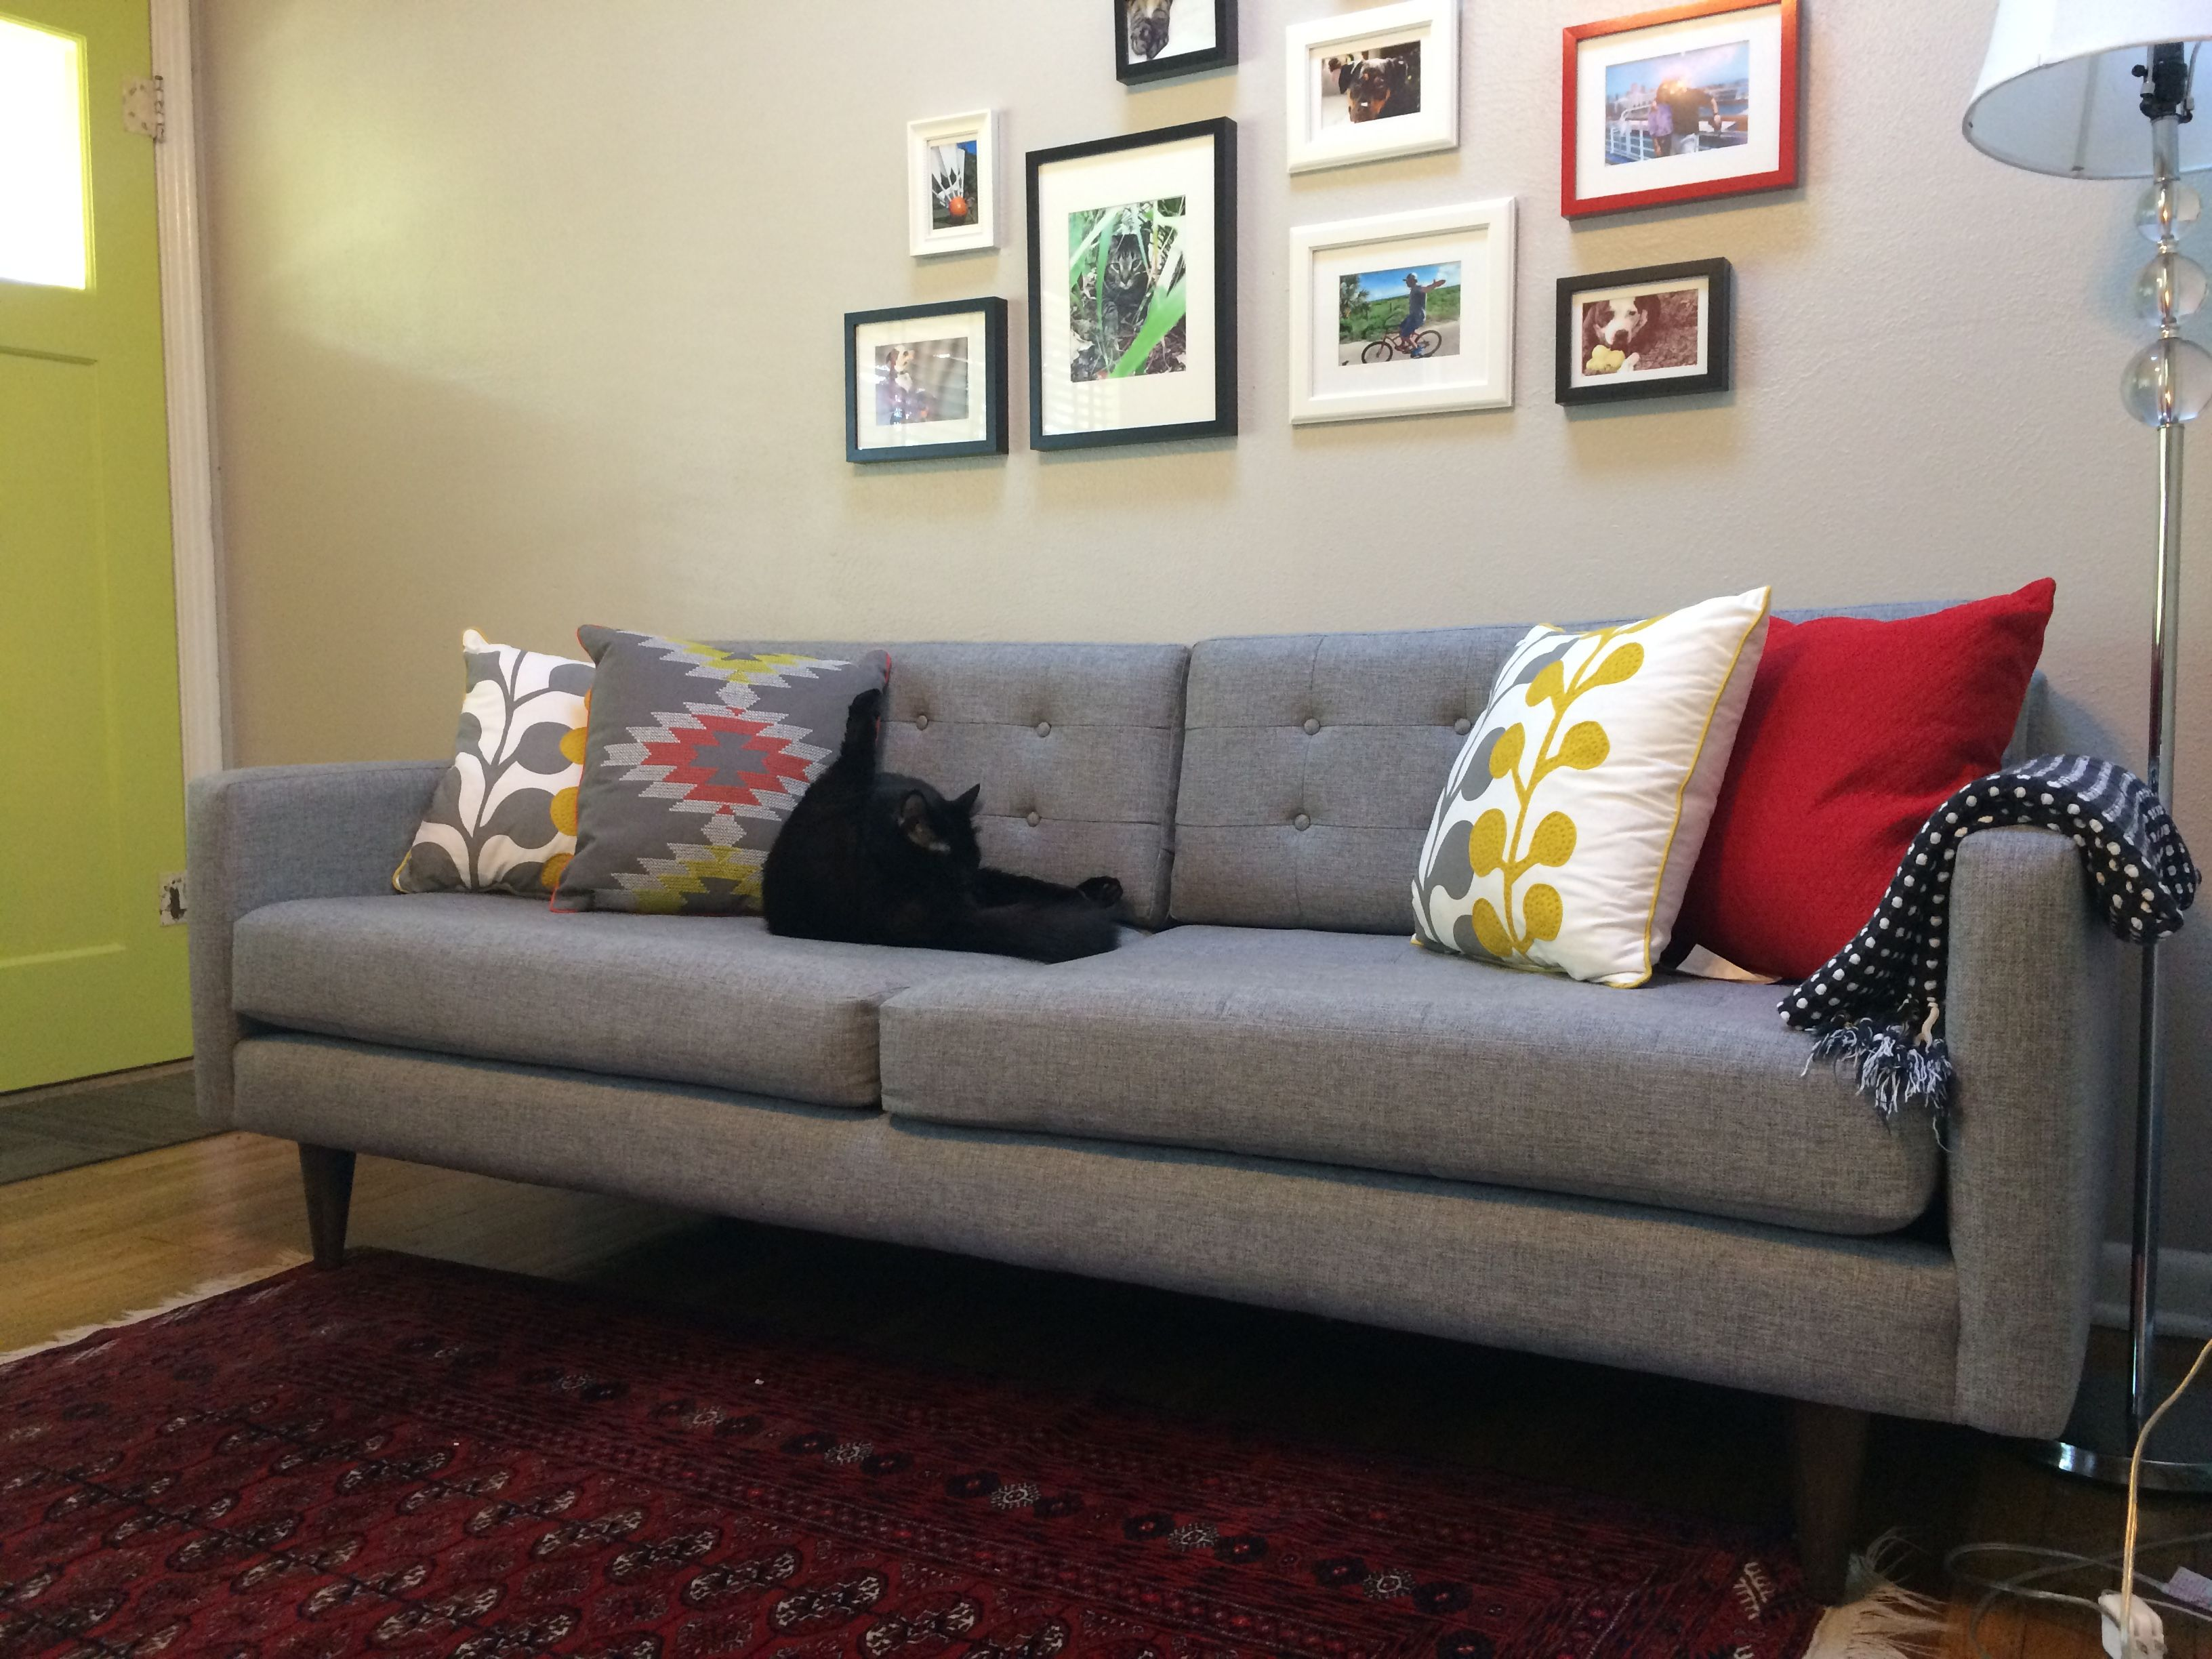 Joybird Eliot Sofa from Veronica R    Just for Pets   Pinterest     Joybird Eliot Sofa from Veronica R